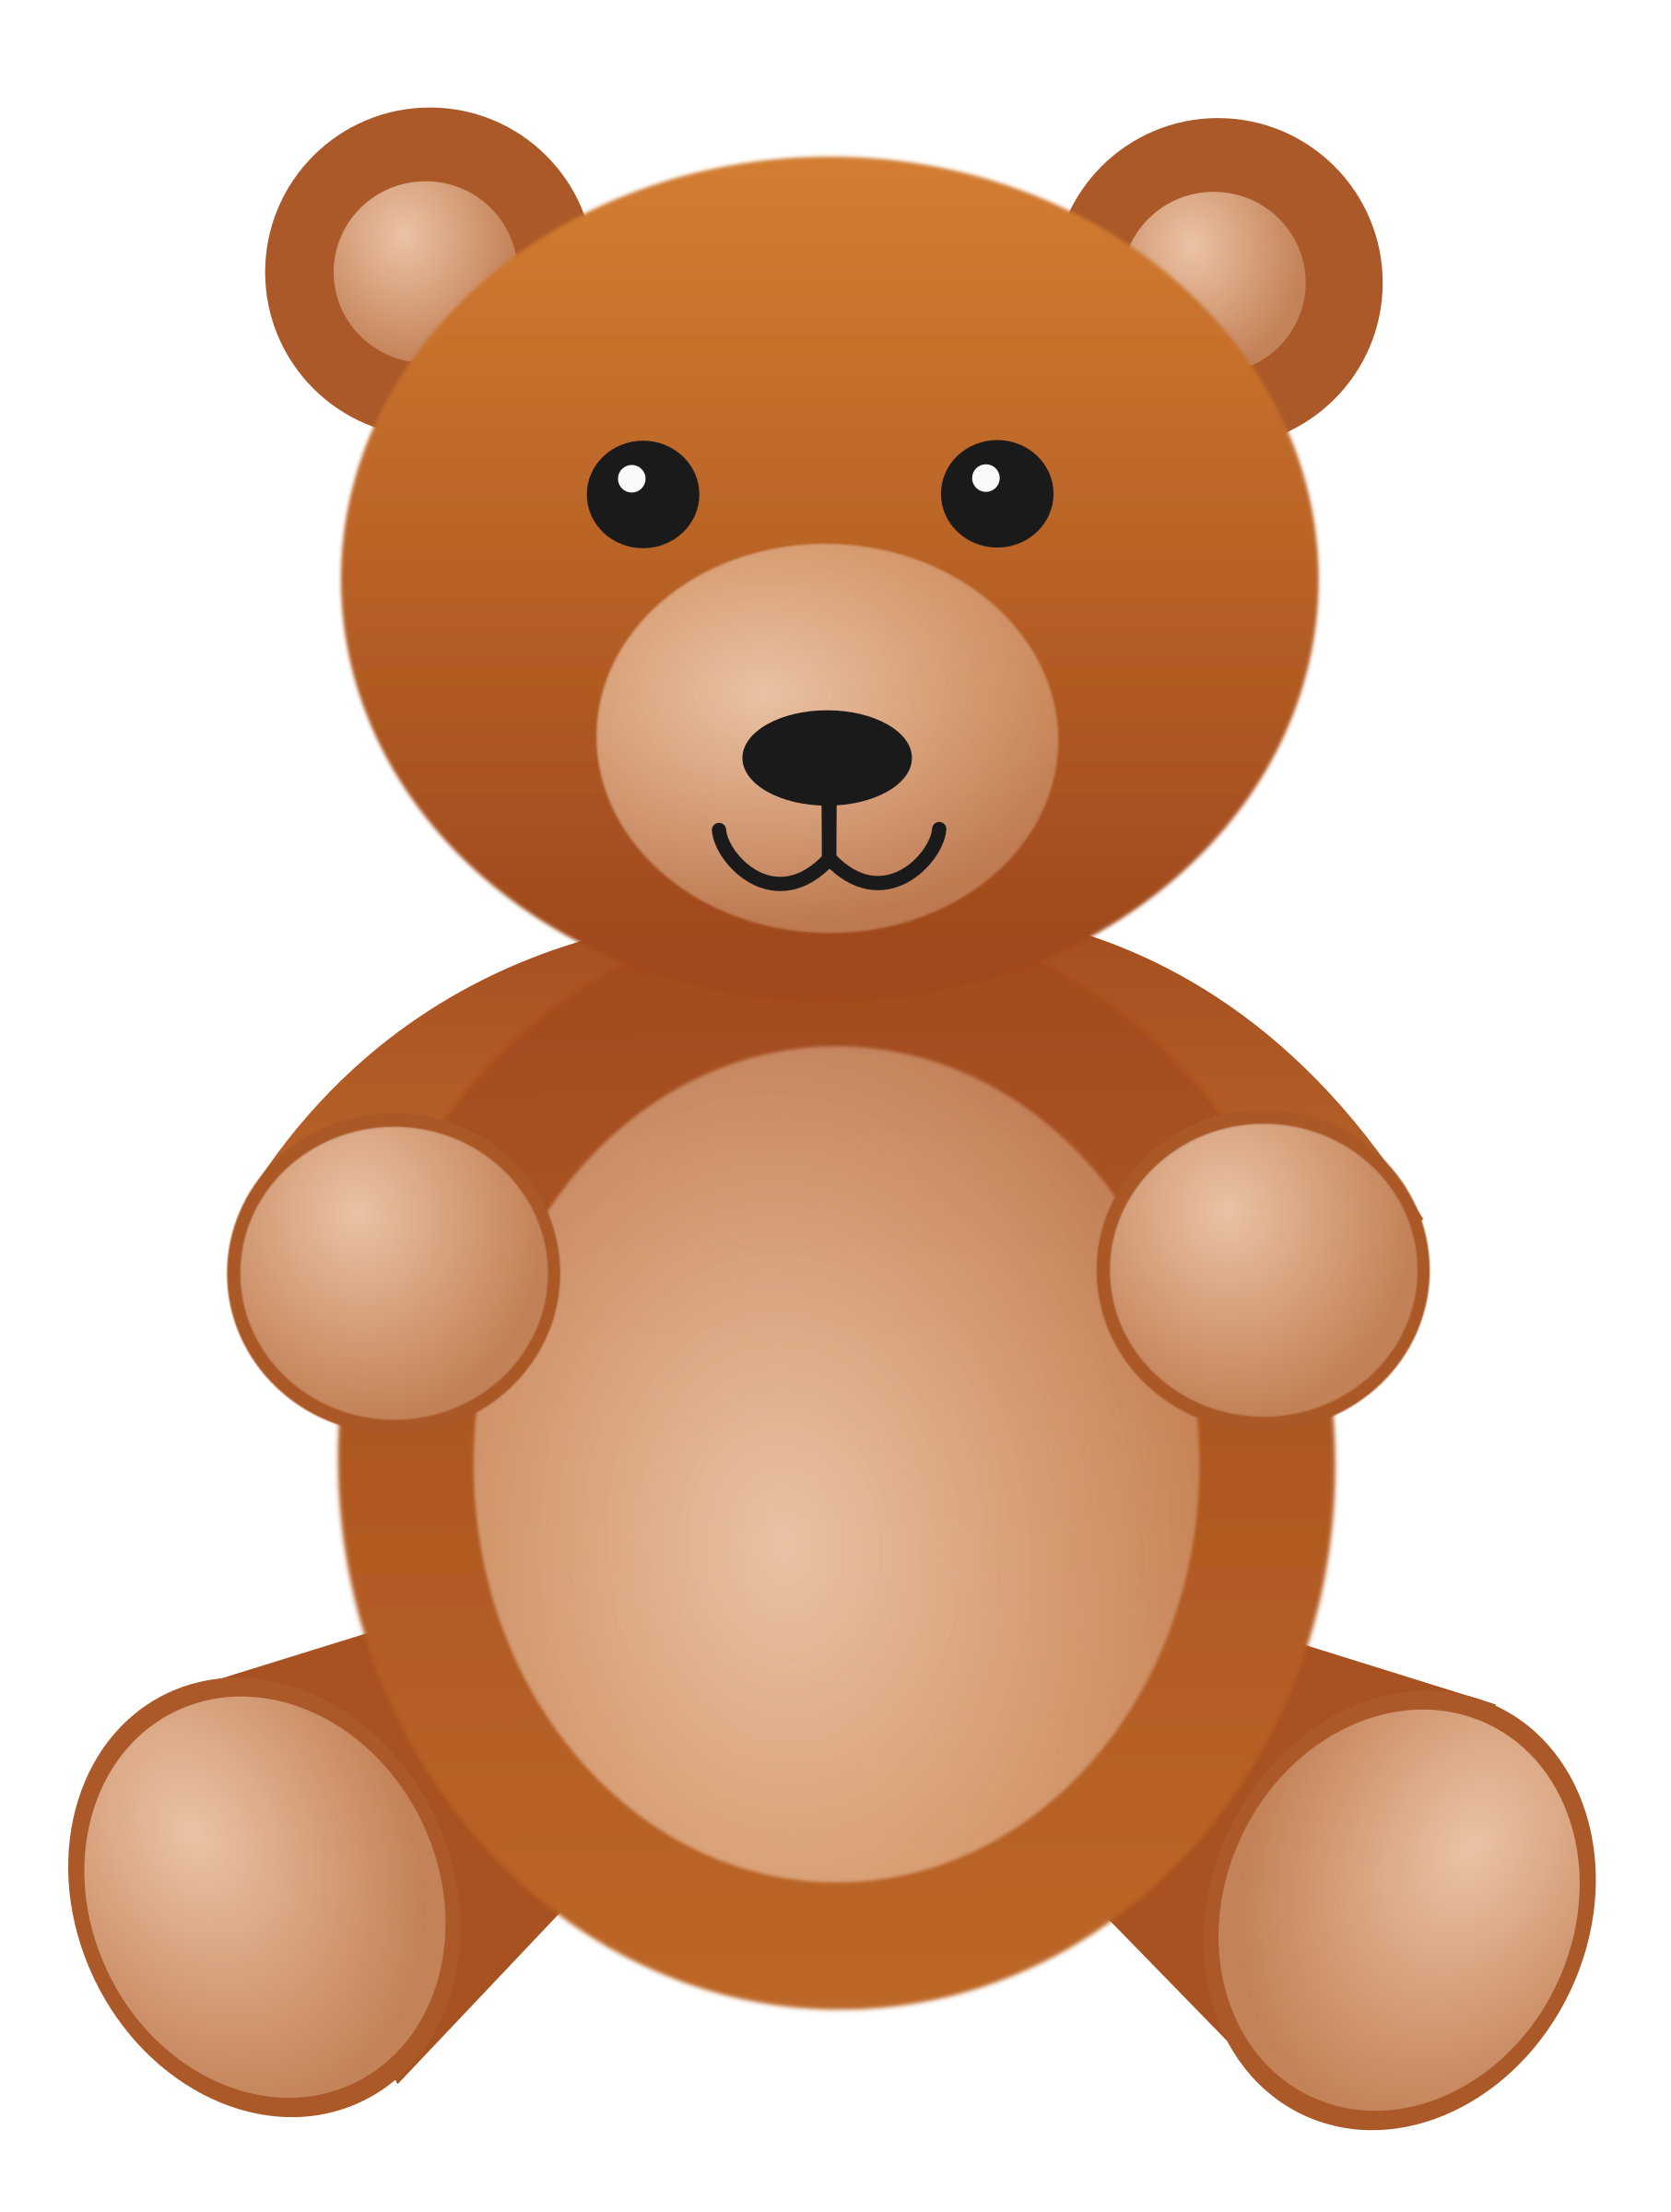 Teddybear by marauder